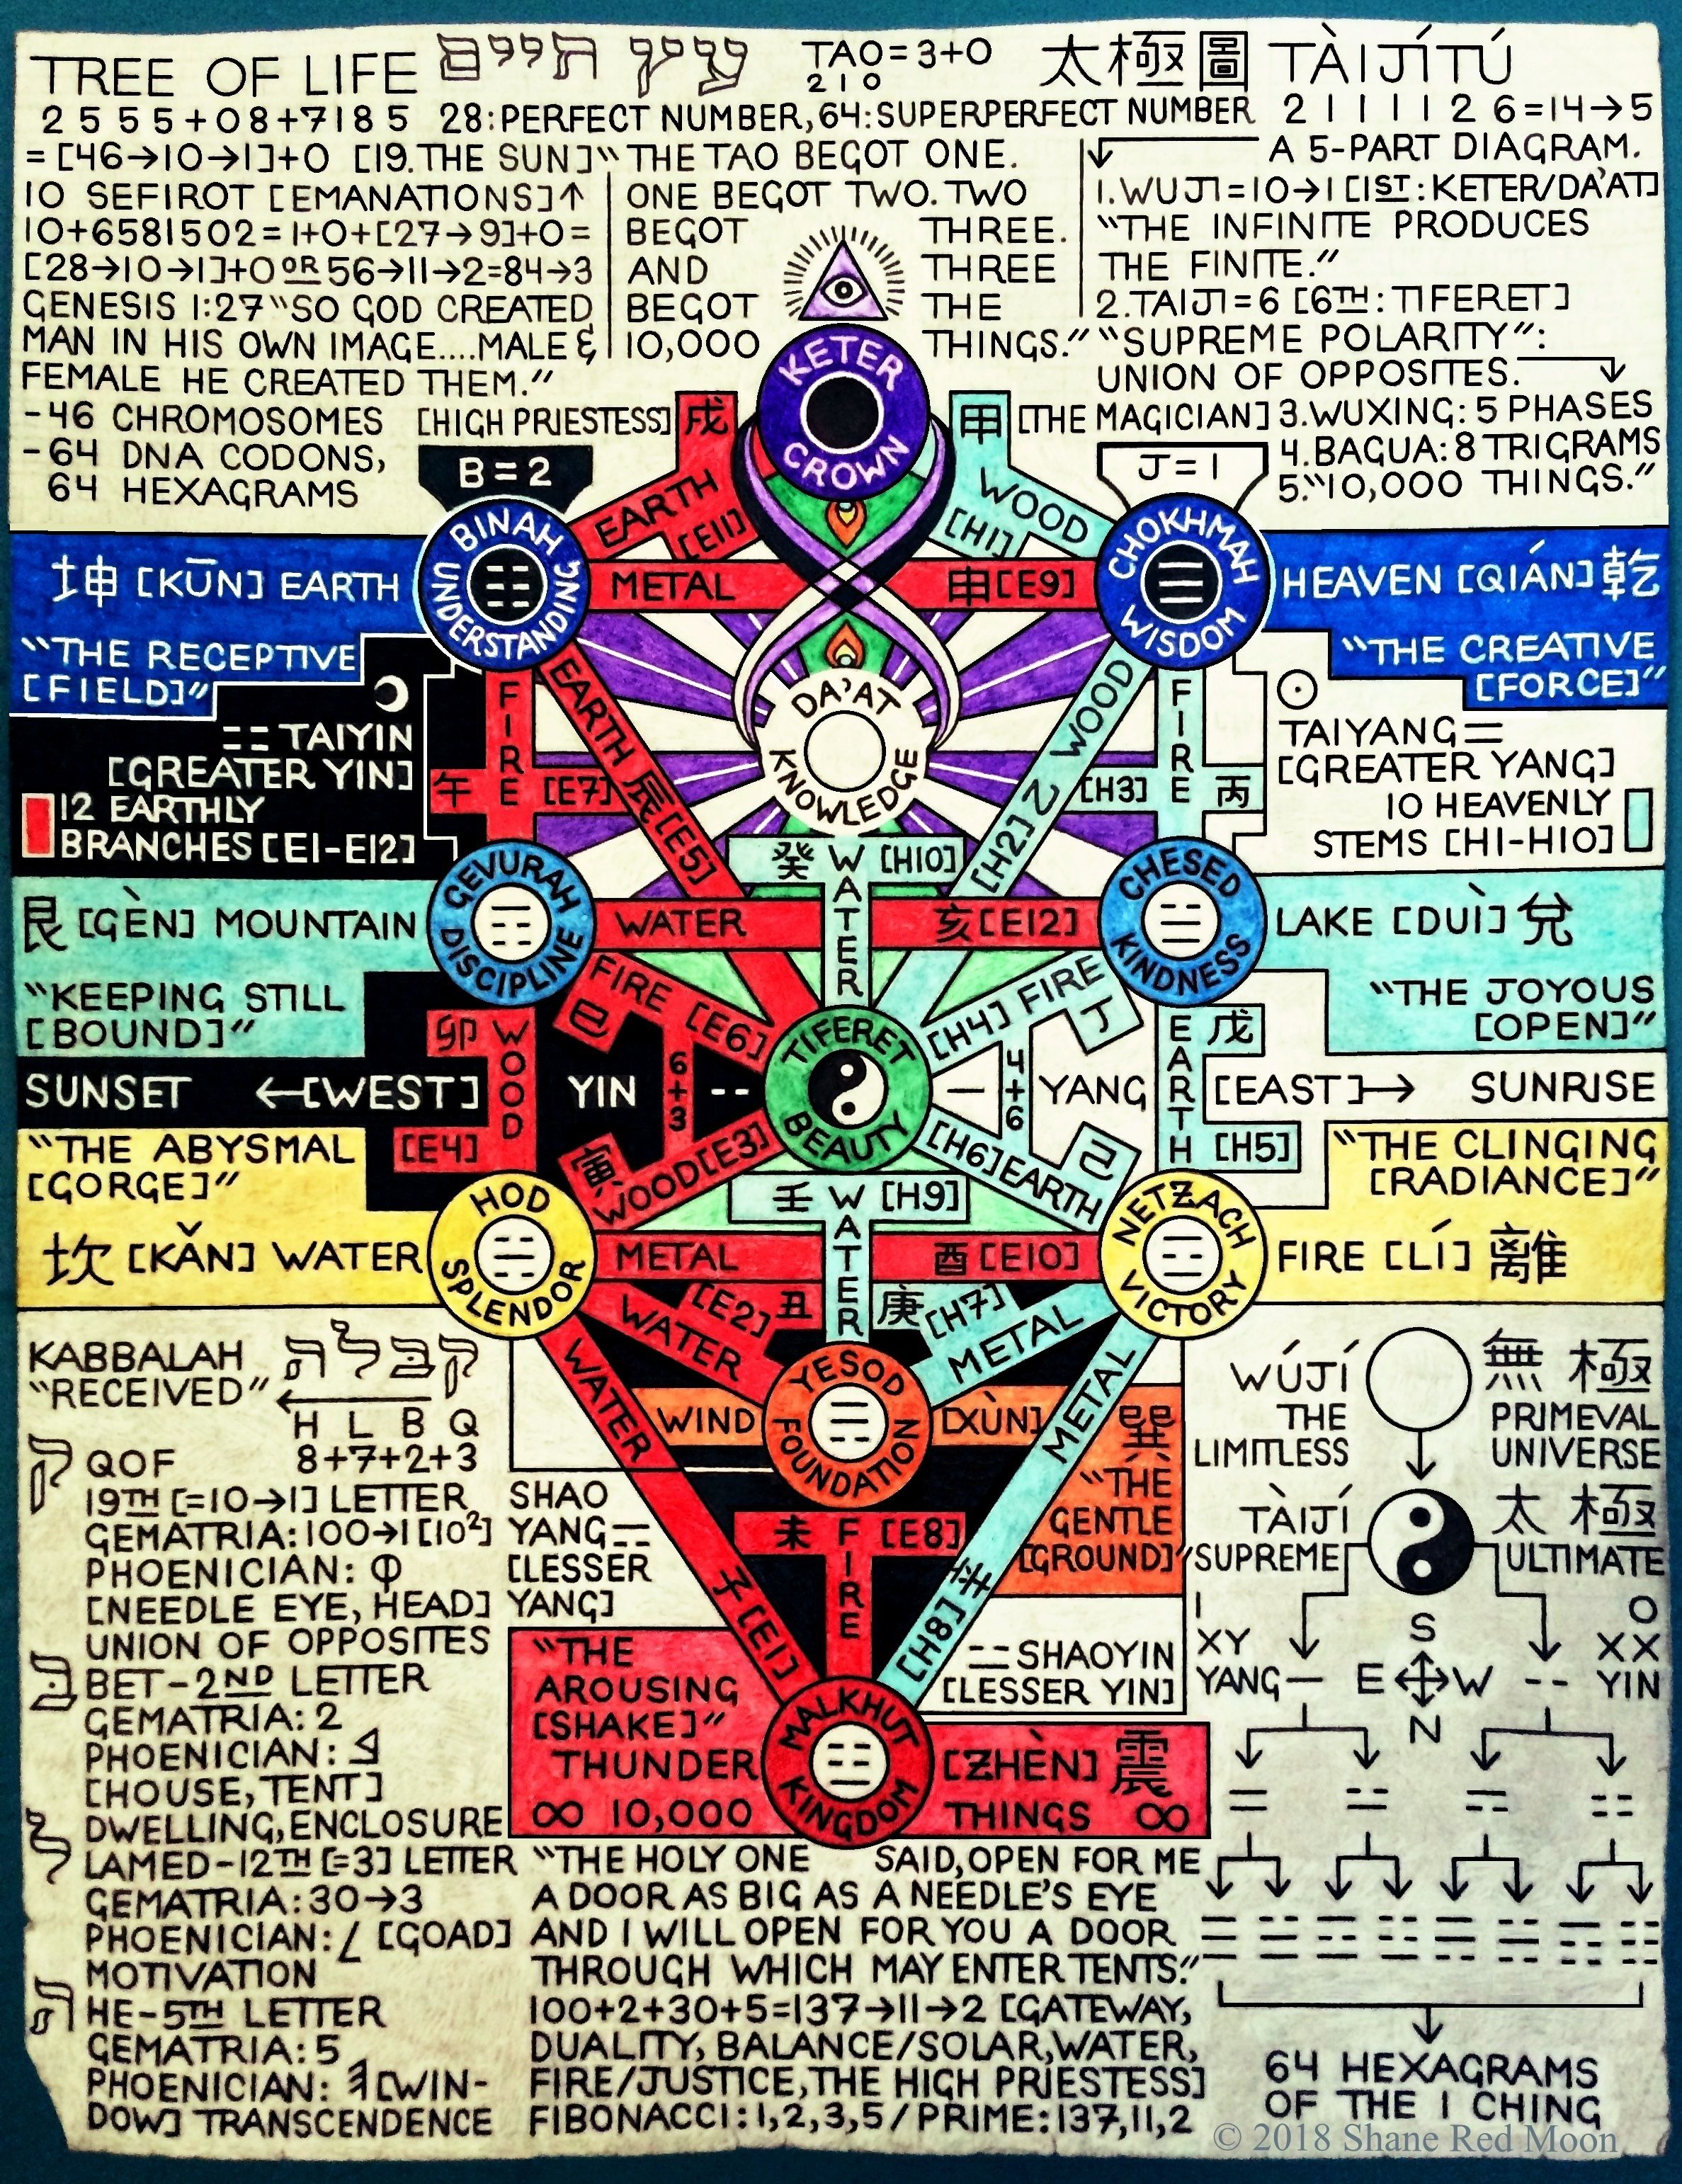 The Tree of Life as Diagram of the Supreme Ultimate [October